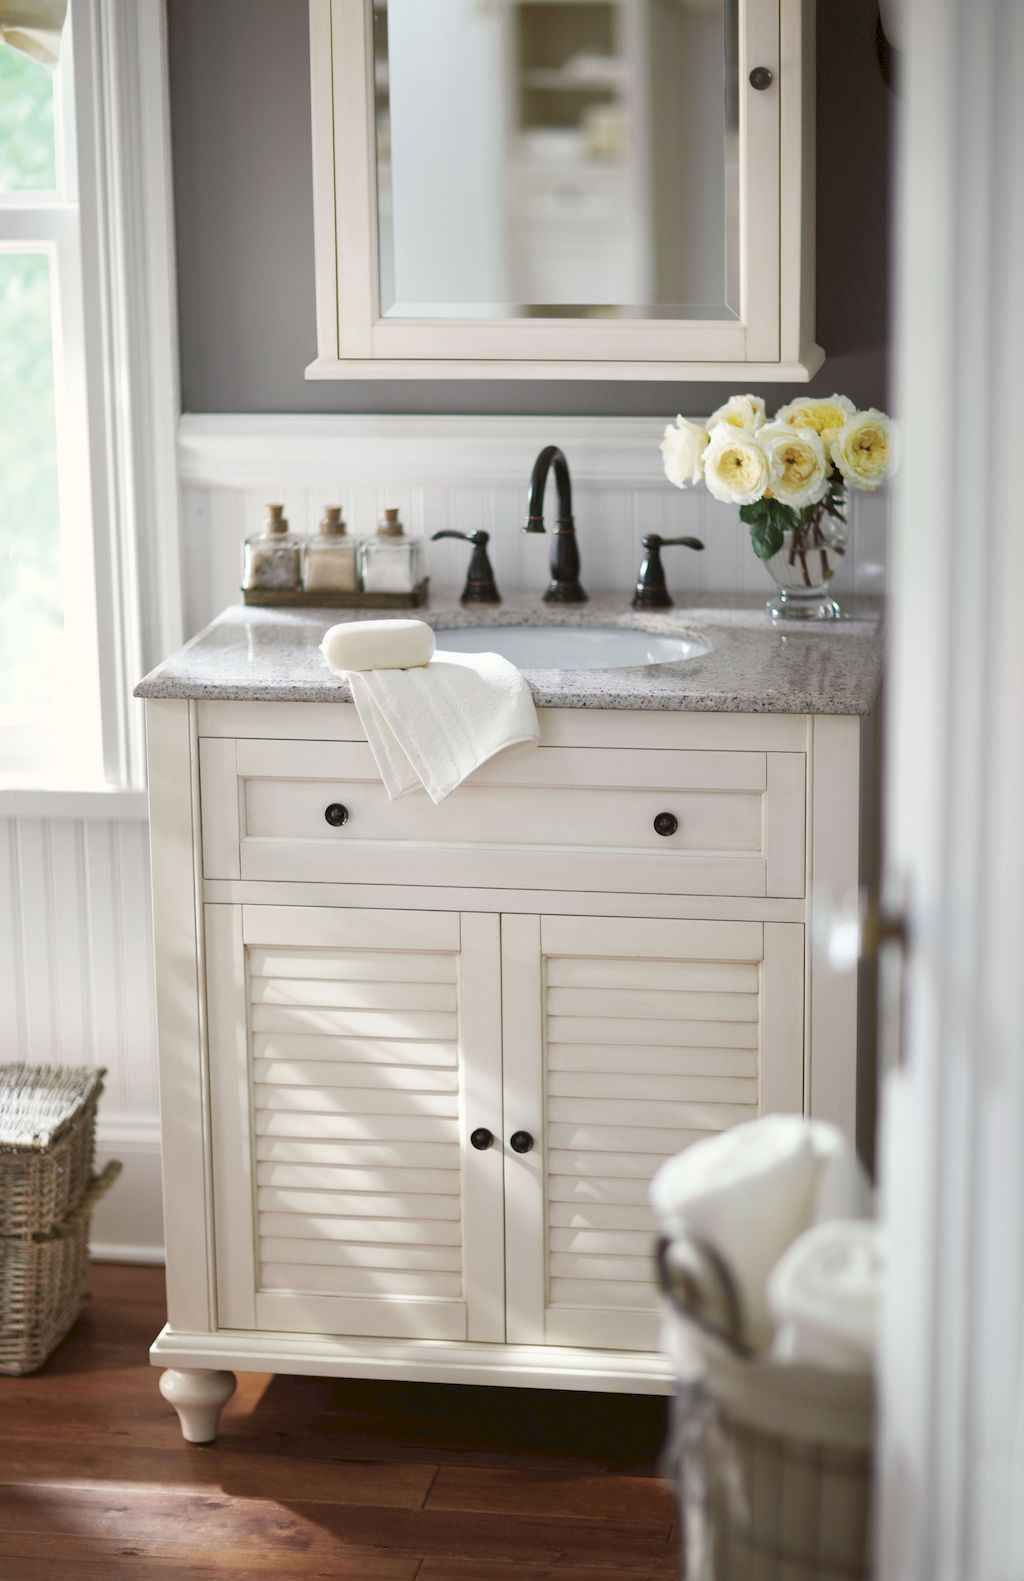 60 Cool Rustic Powder Room Design Ideas 58 Small Bathroom